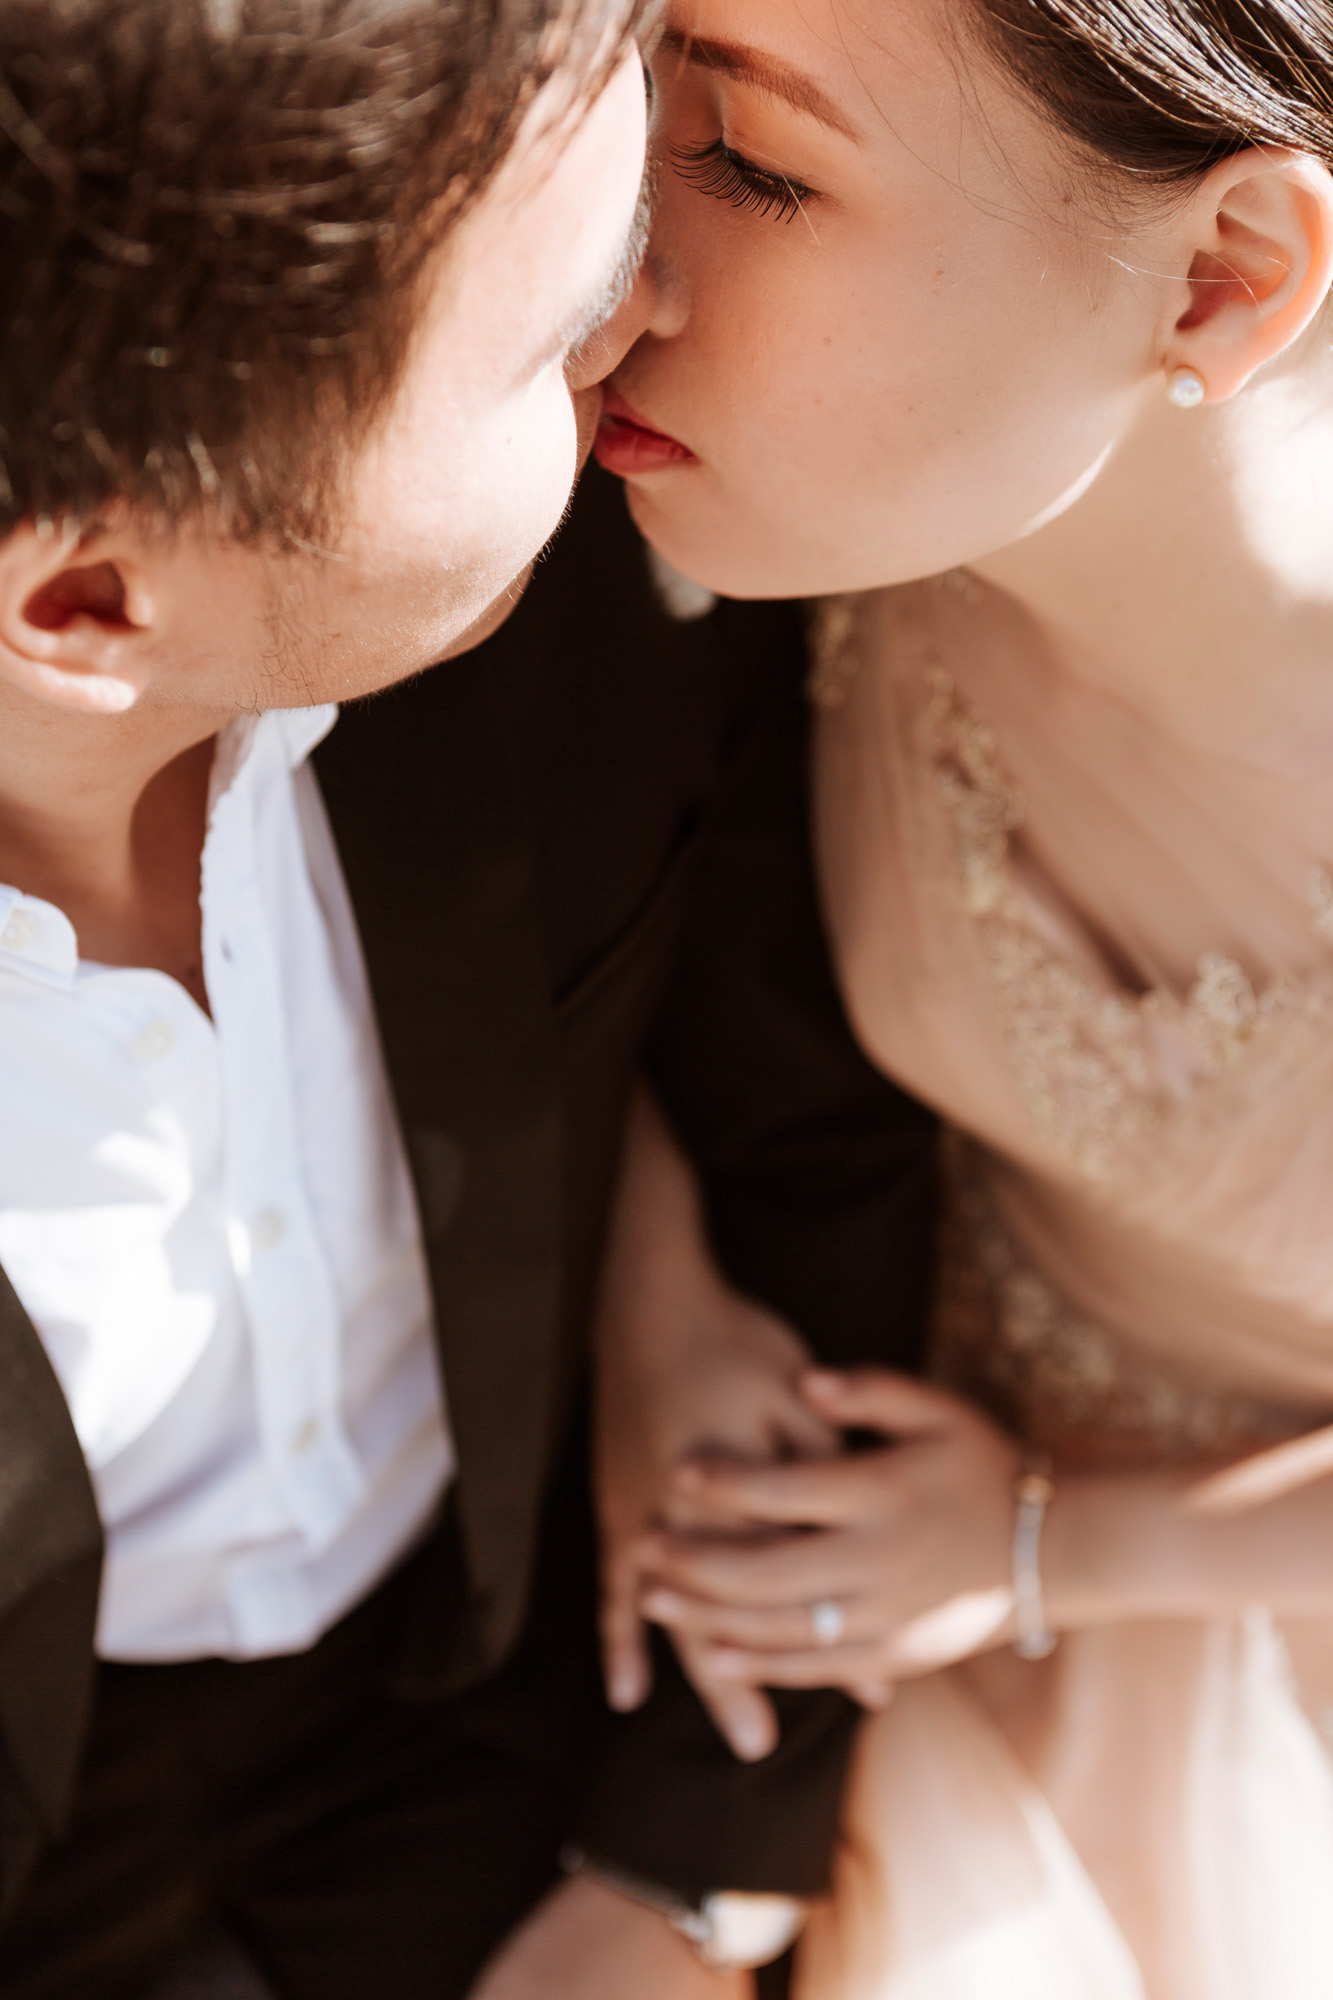 Pre-wedding couple portrait close up kissing and holding hands captured by Paris Photographer Federico Guendel